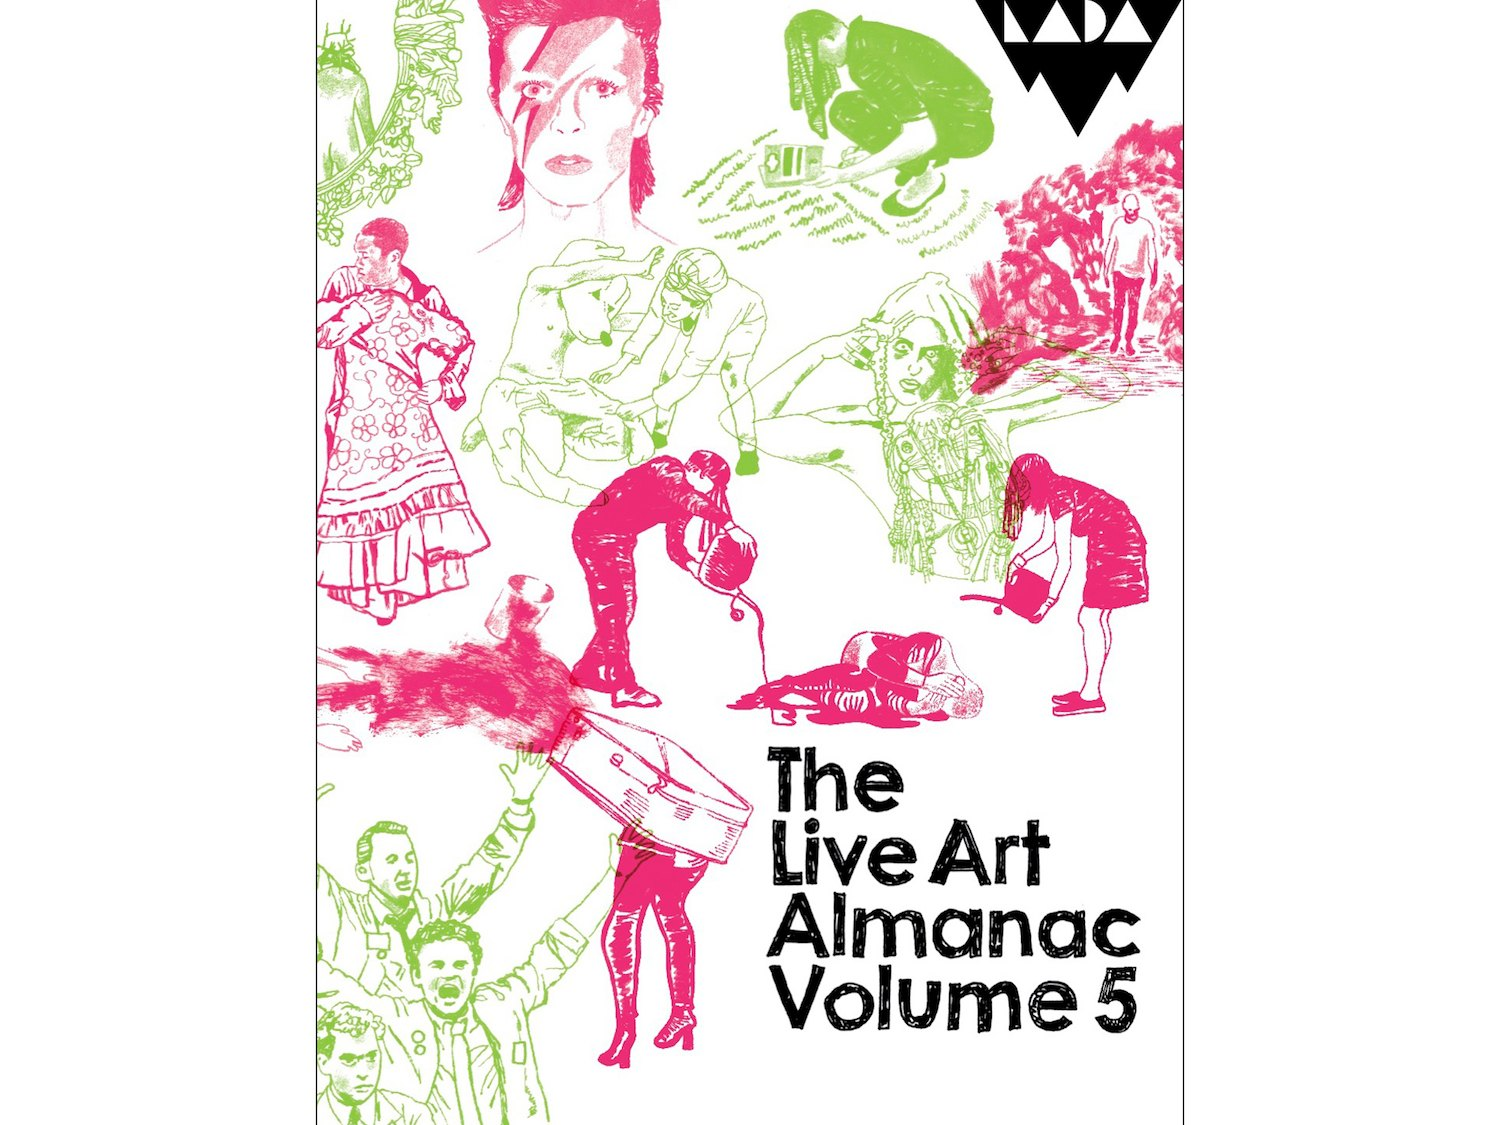 The cover of the Live Art Almanac Volume 5